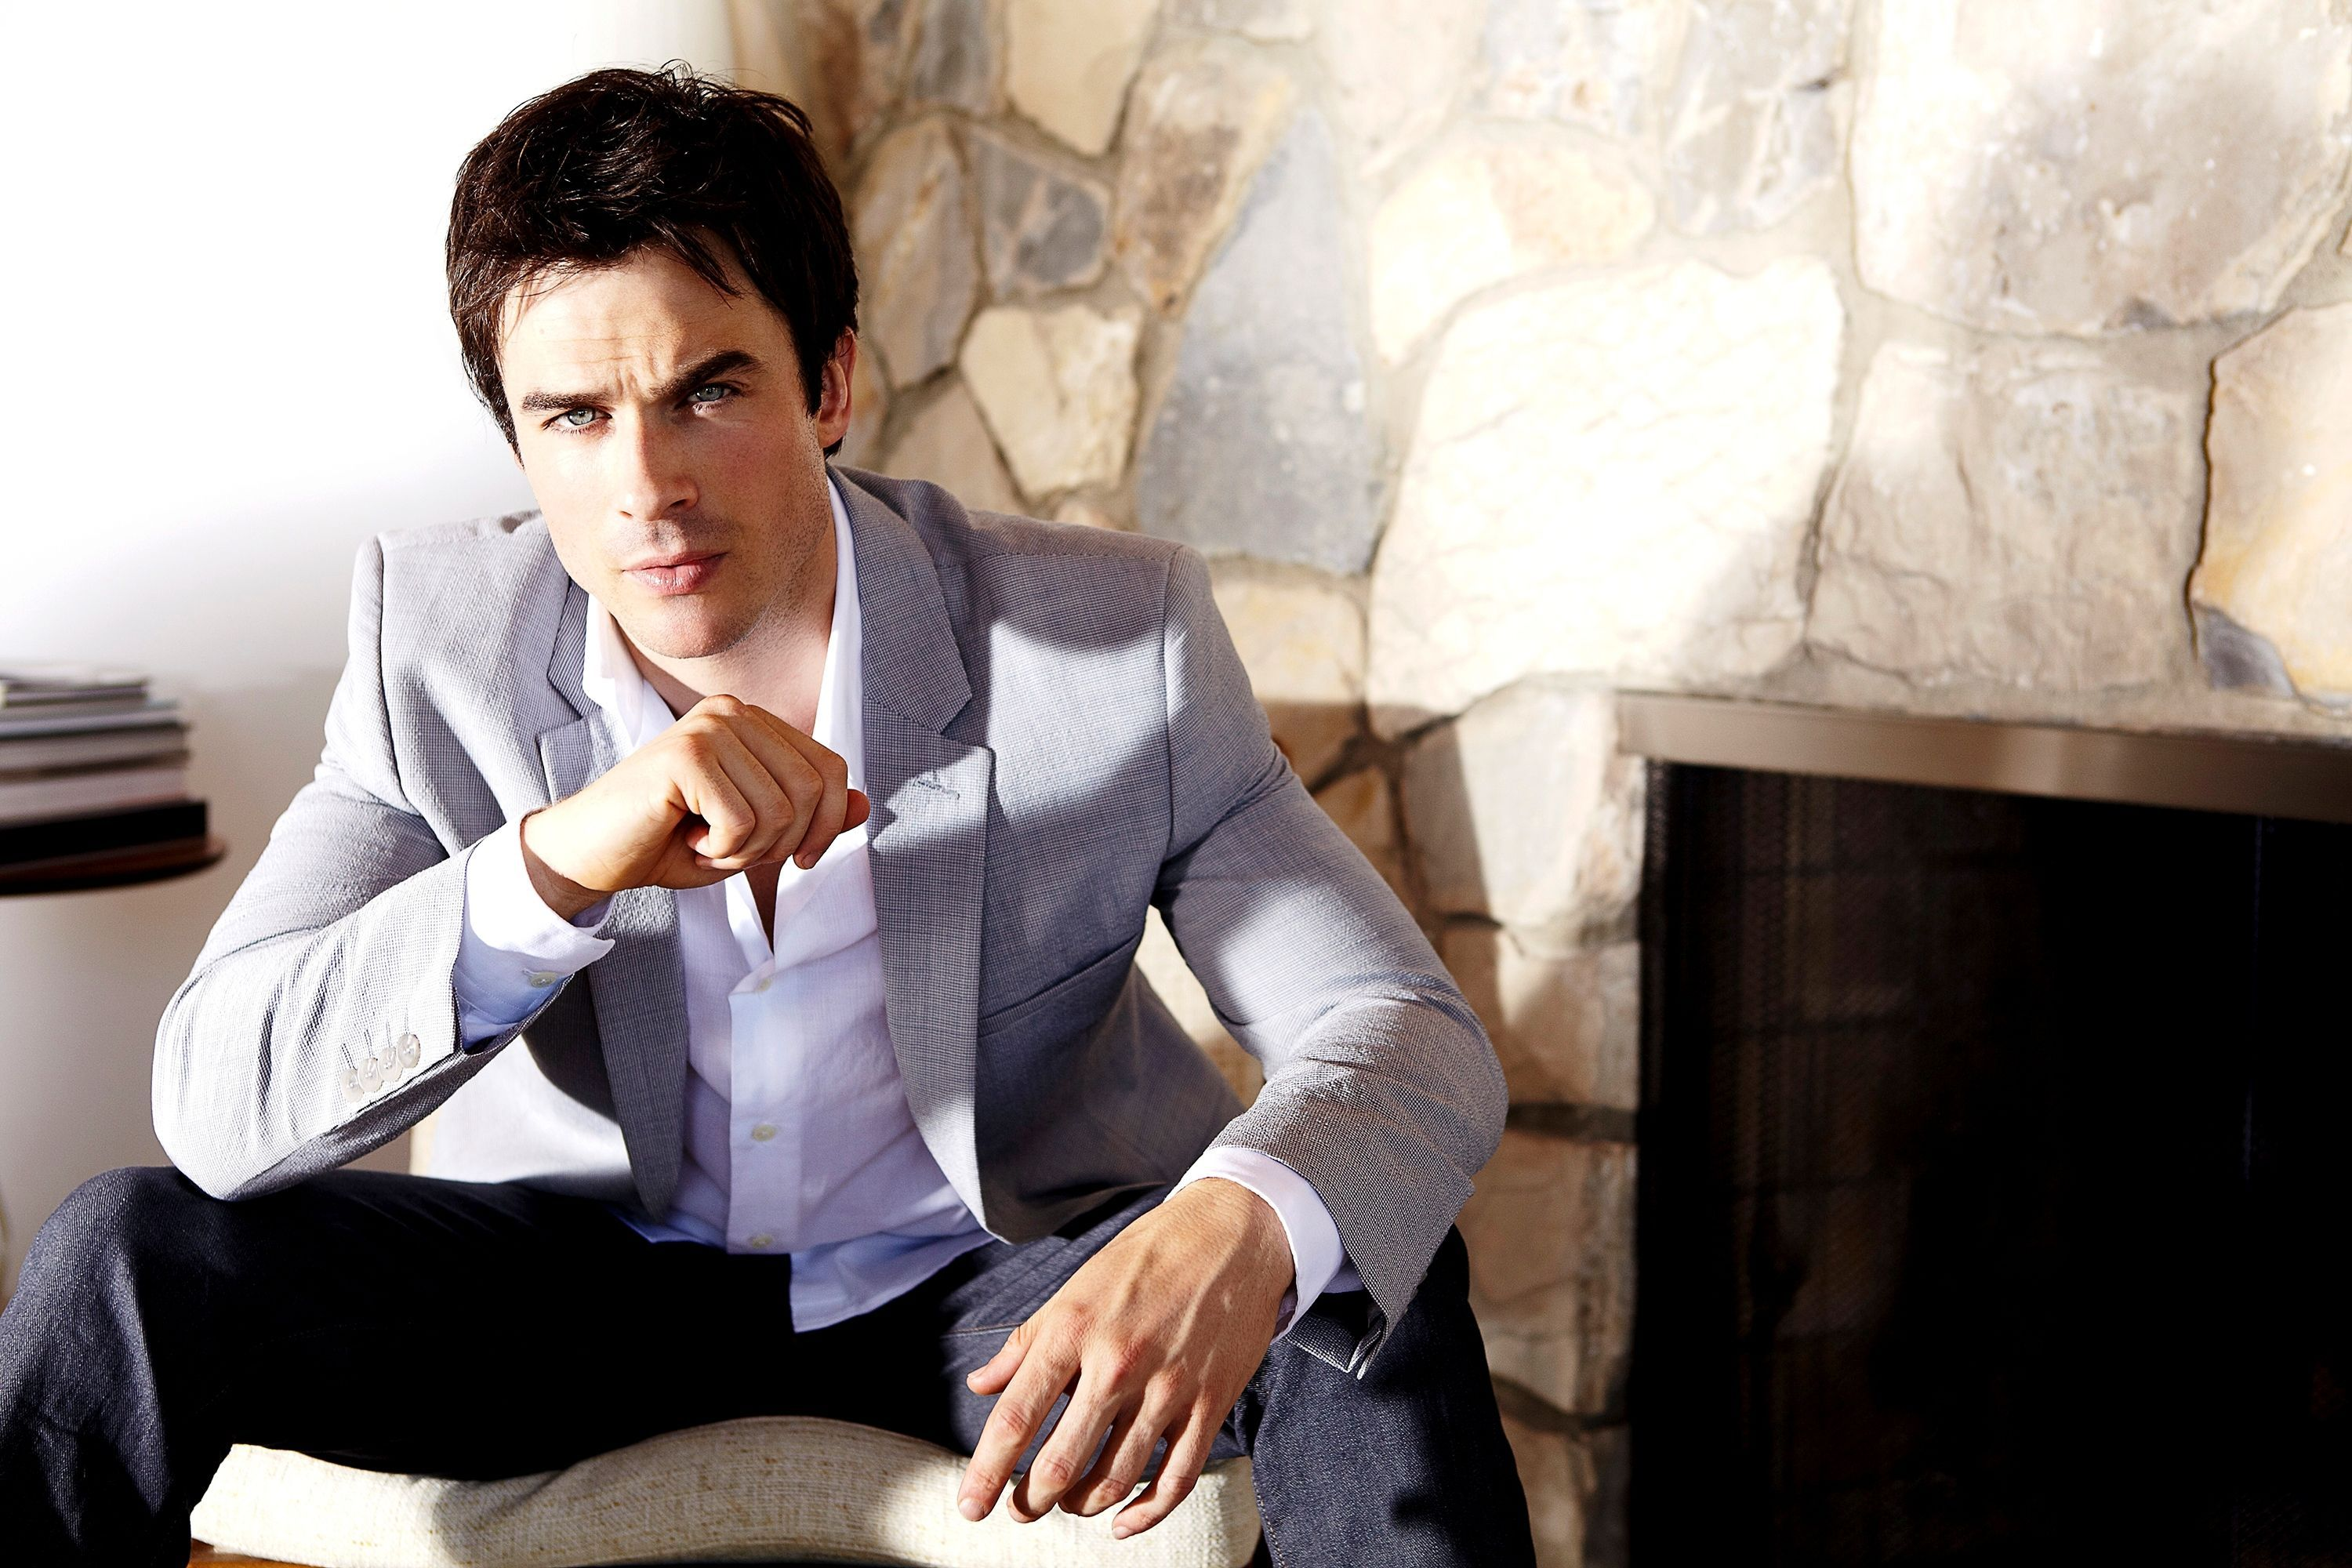 Handsome Man Wallpapers Group 57 3000x2000